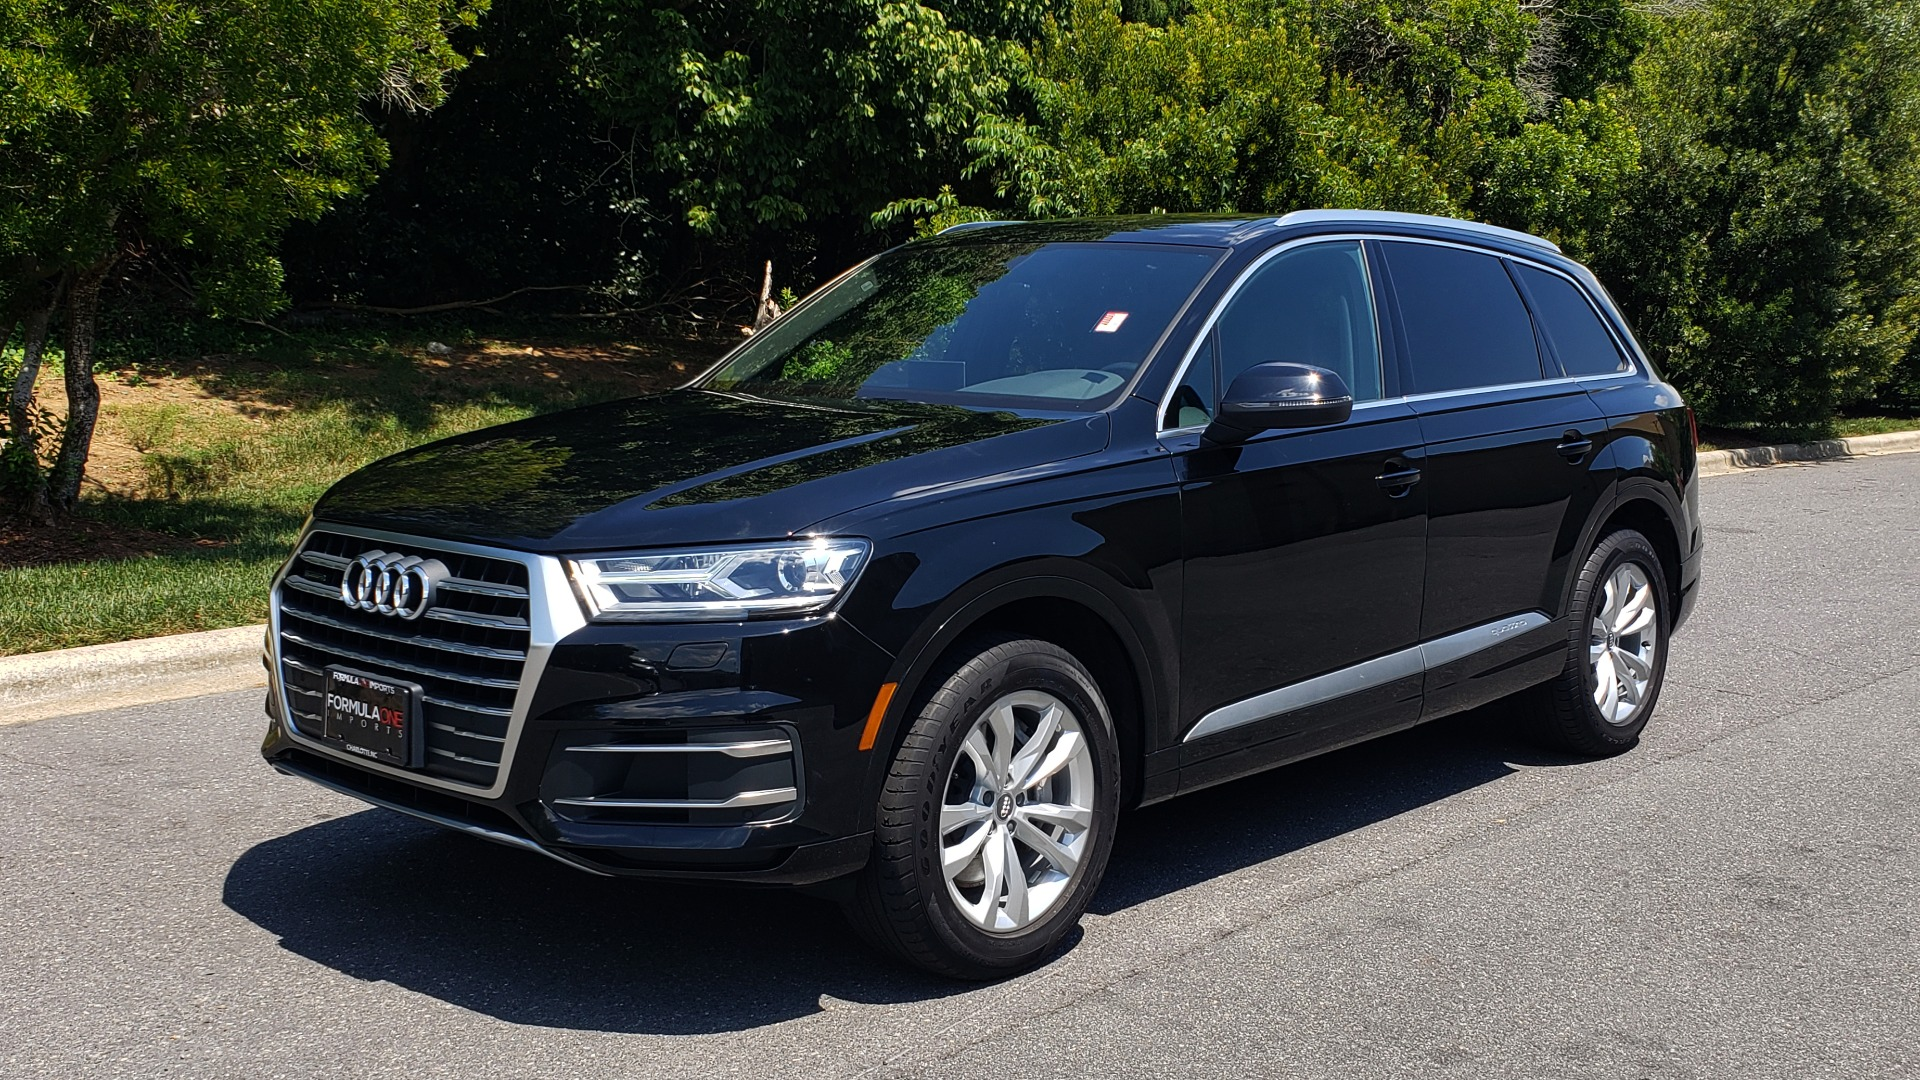 Used 2017 Audi Q7 PREMIUM PLUS / NAV / CLD WTHR / 3-ROW / REARVIEW for sale $35,399 at Formula Imports in Charlotte NC 28227 1